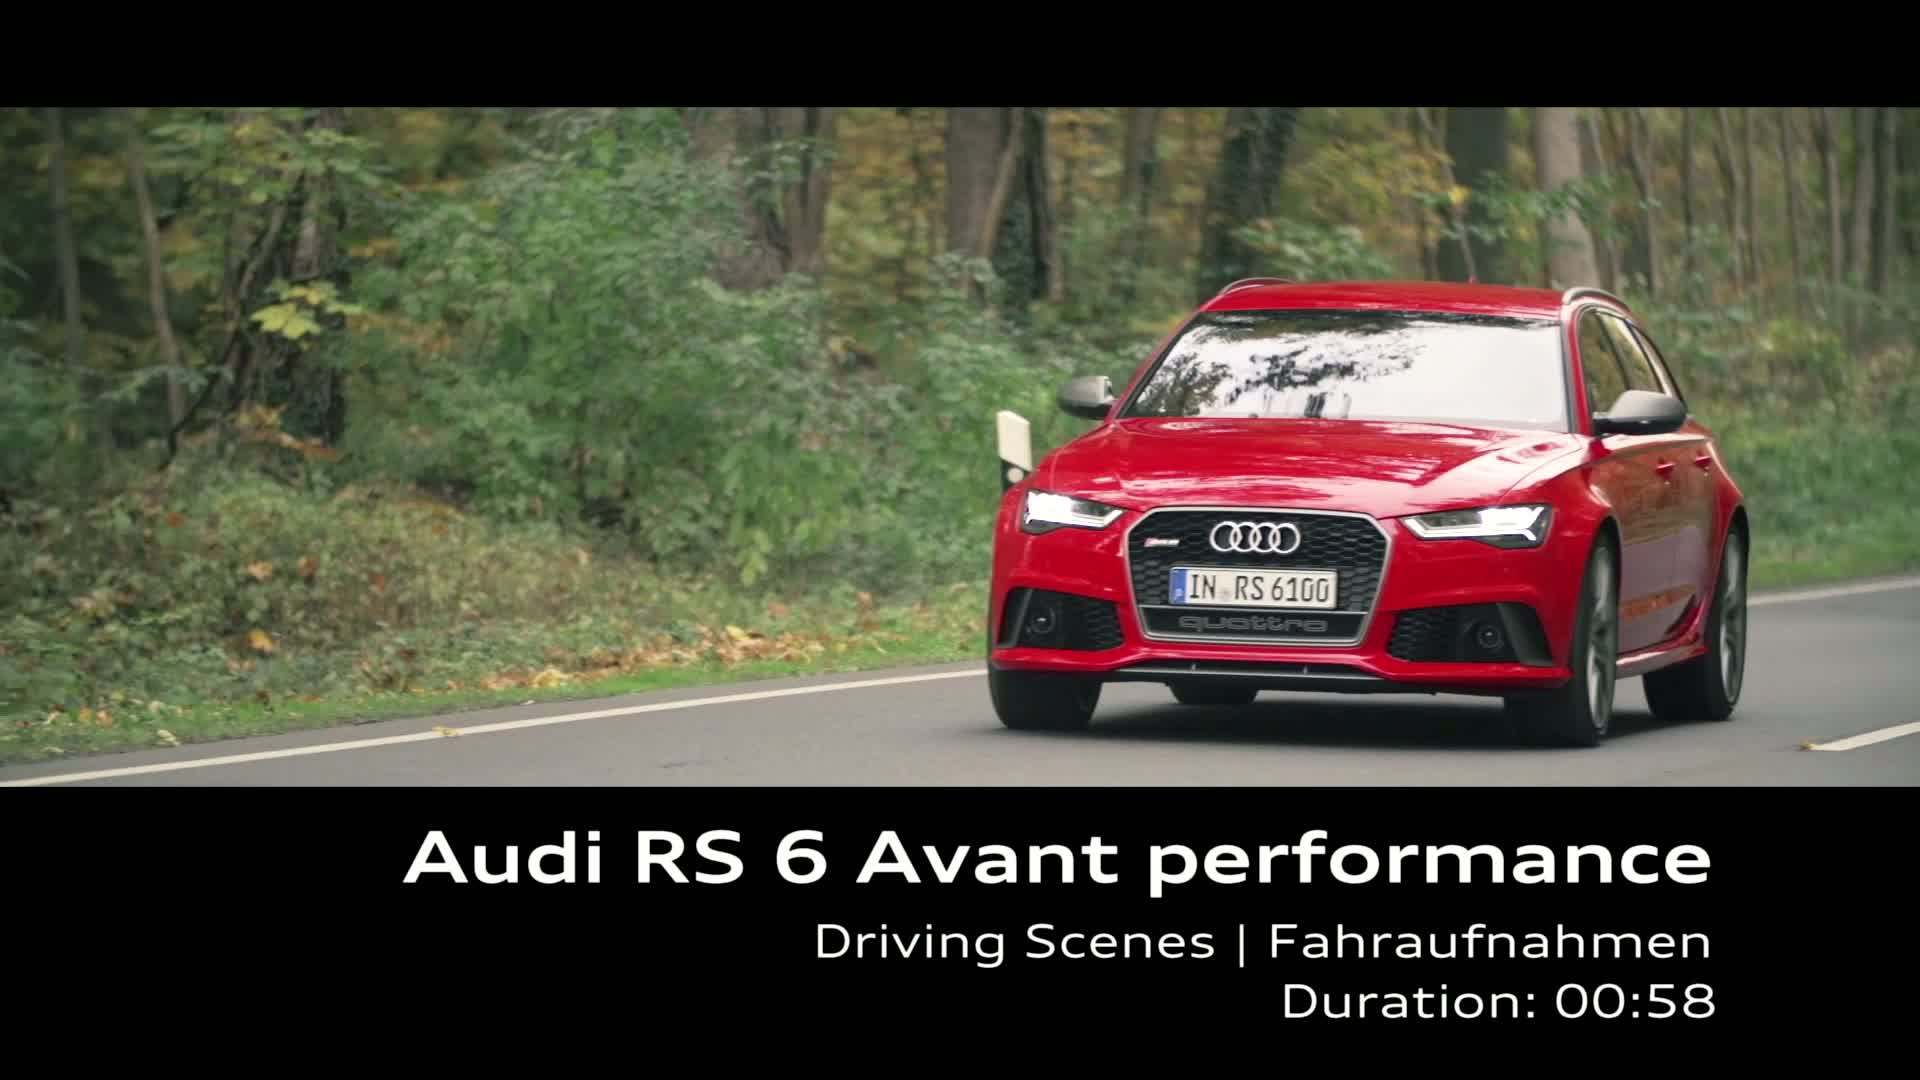 Audi RS 6 Avant performance - Footage